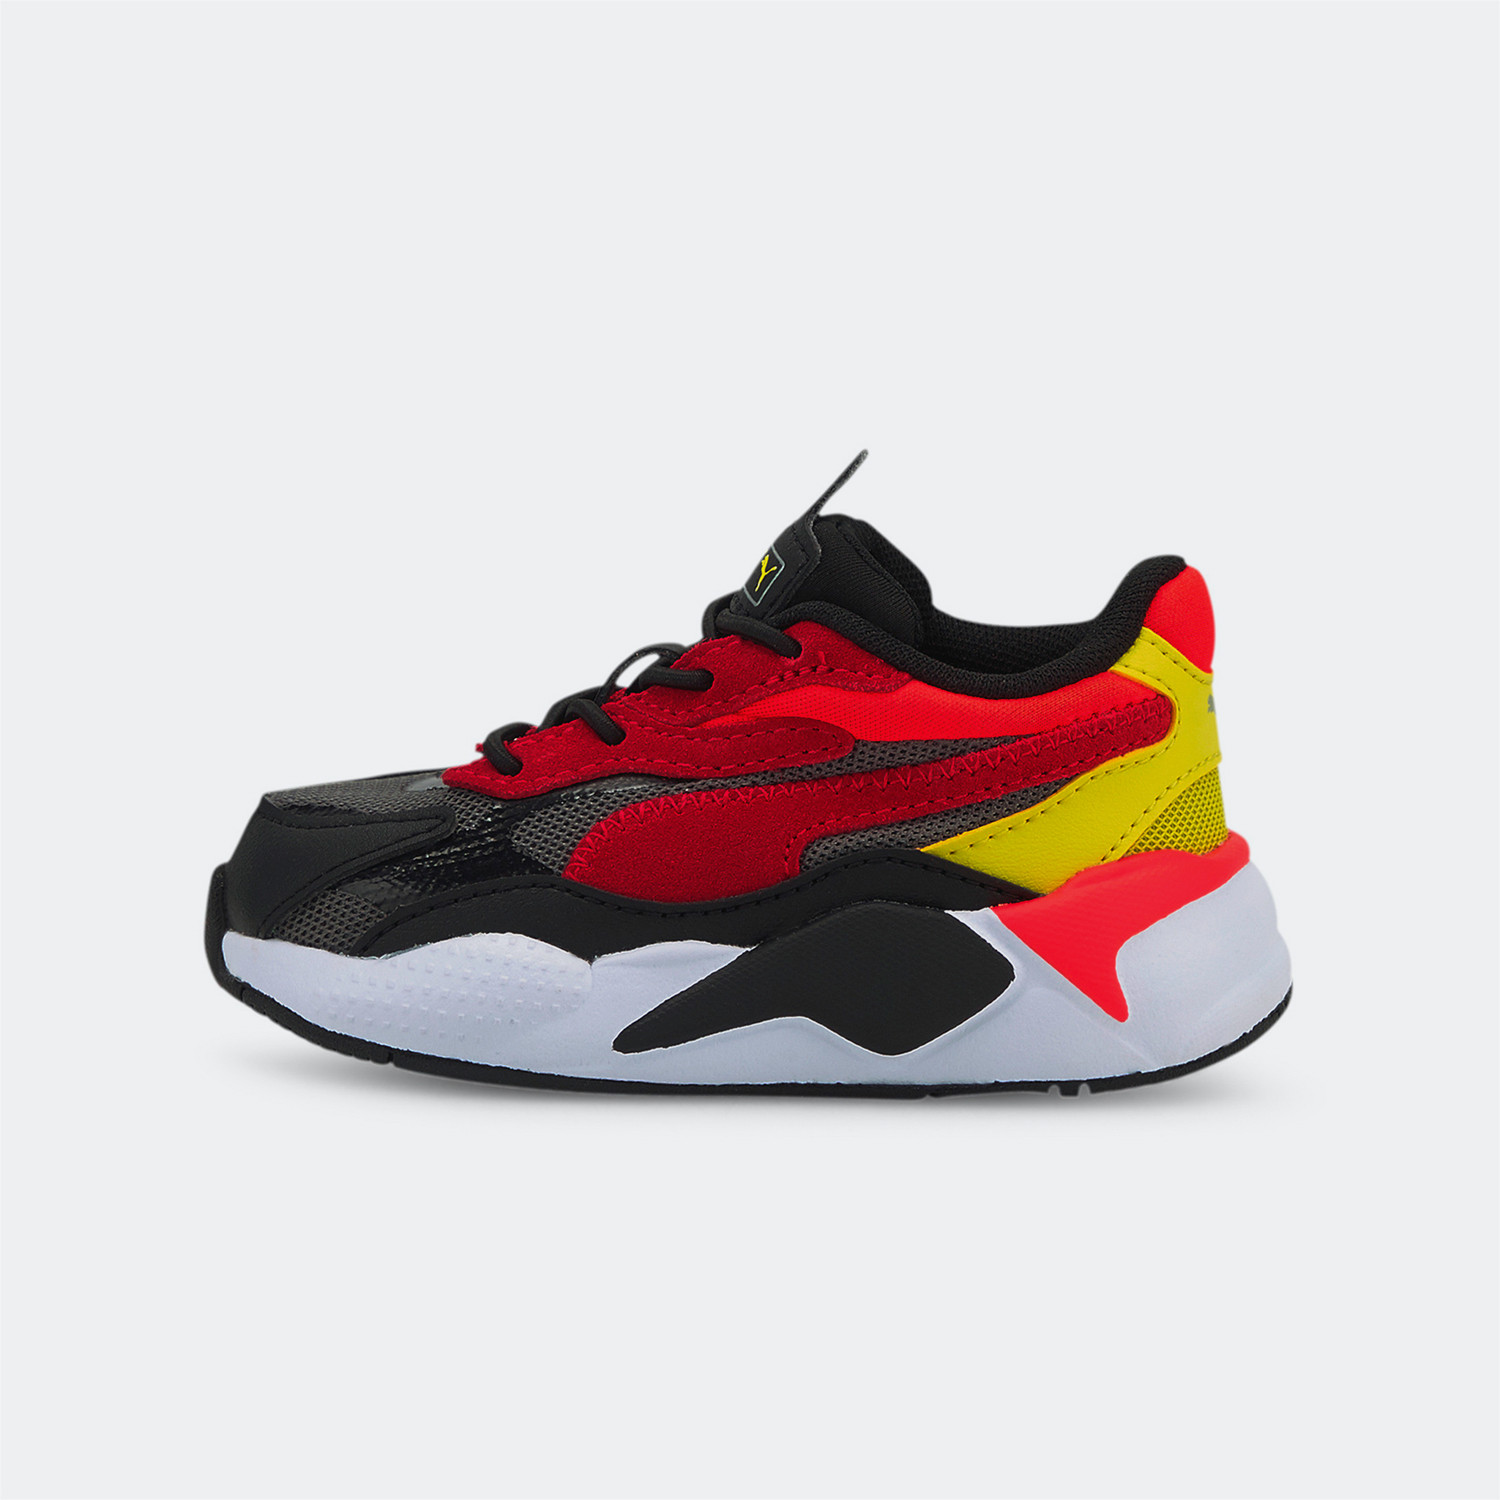 Puma Rs-X³ Neon Flame Βρεφικά Παπούτσια (9000072647_36628)